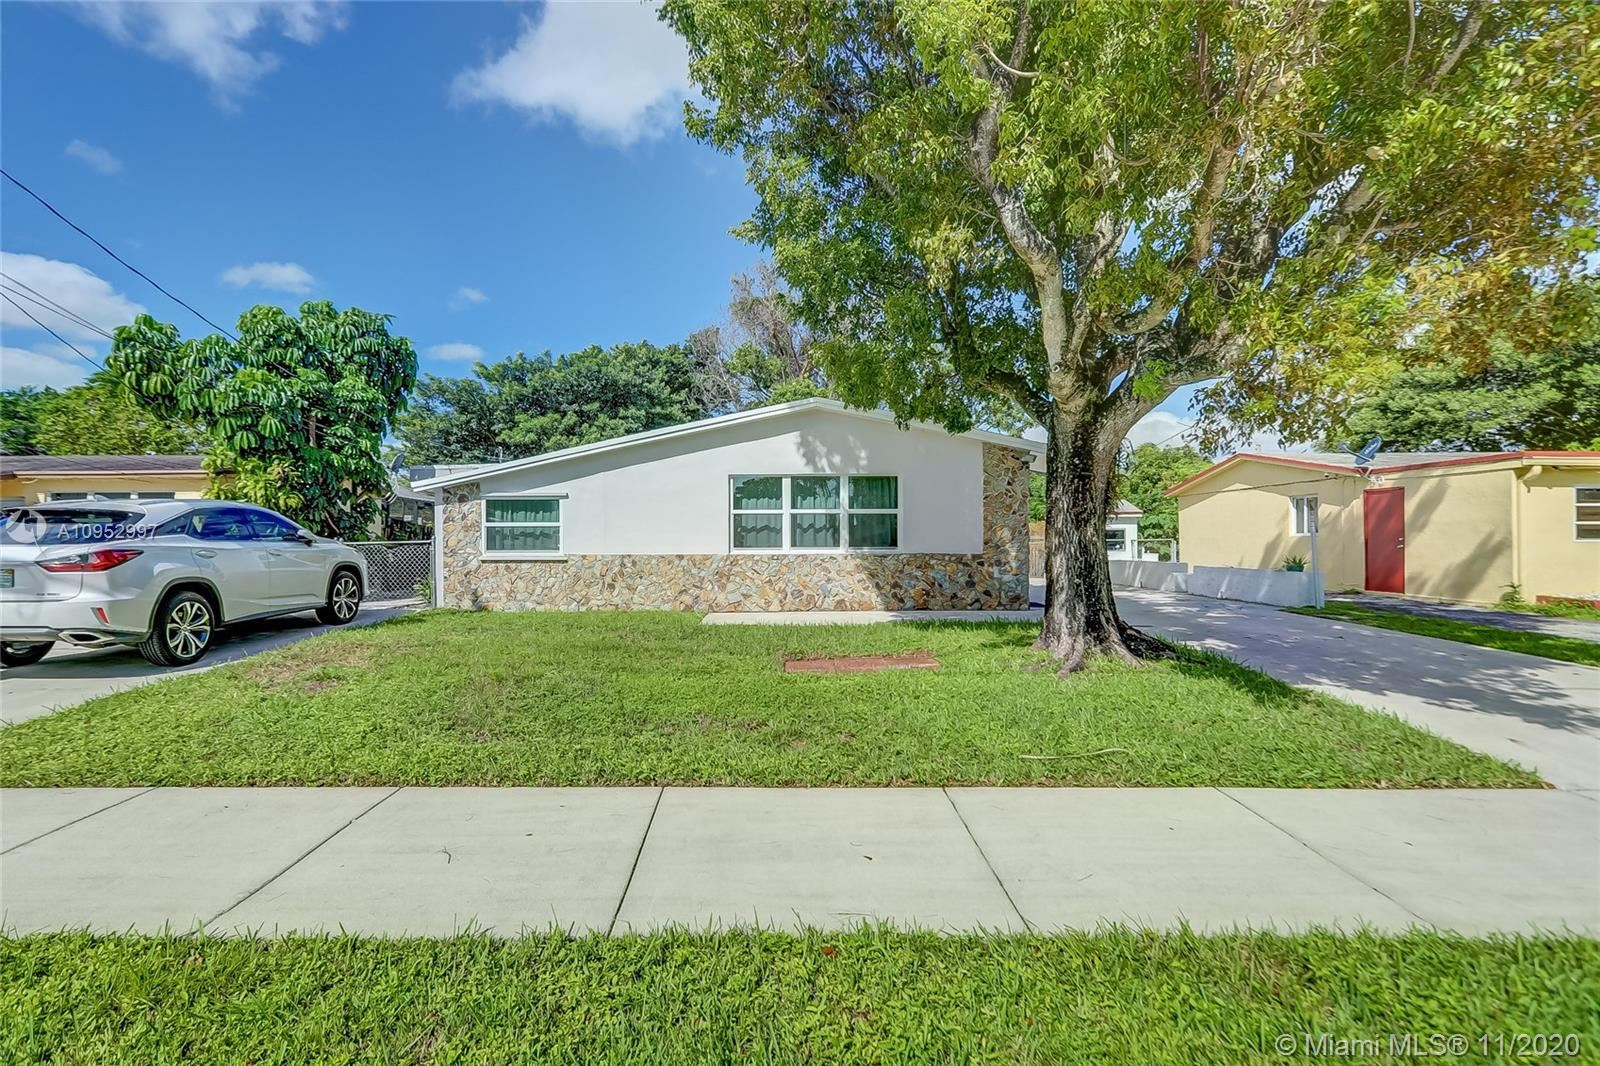 Photo of 5921 NW 41st Ter, North Lauderdale, FL 33319 (MLS # A10952997)